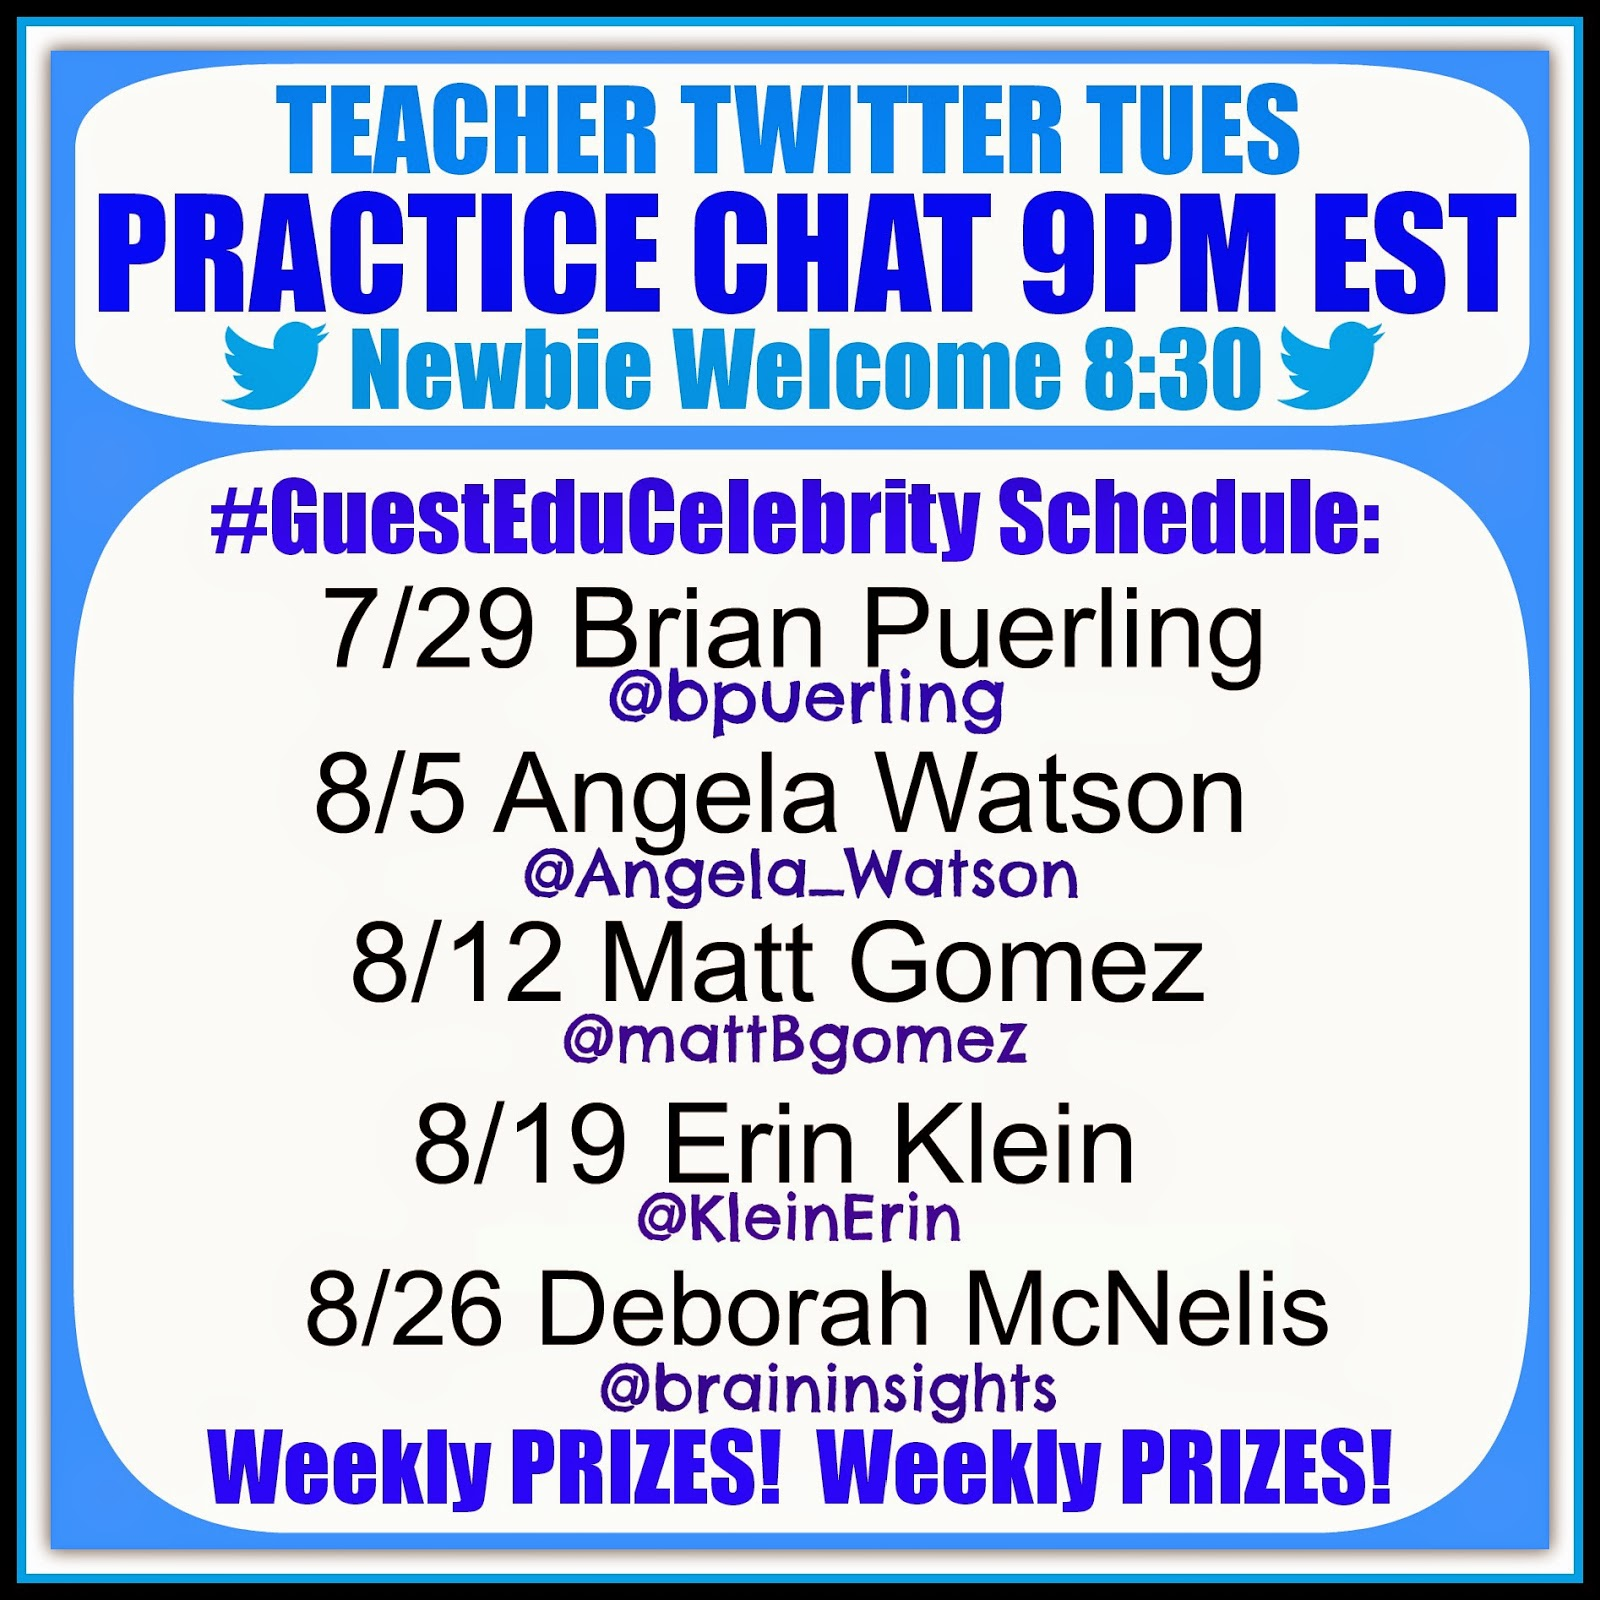 Twitter Chat Schedule for #TeacherFriends Moderated by Debbie Clement